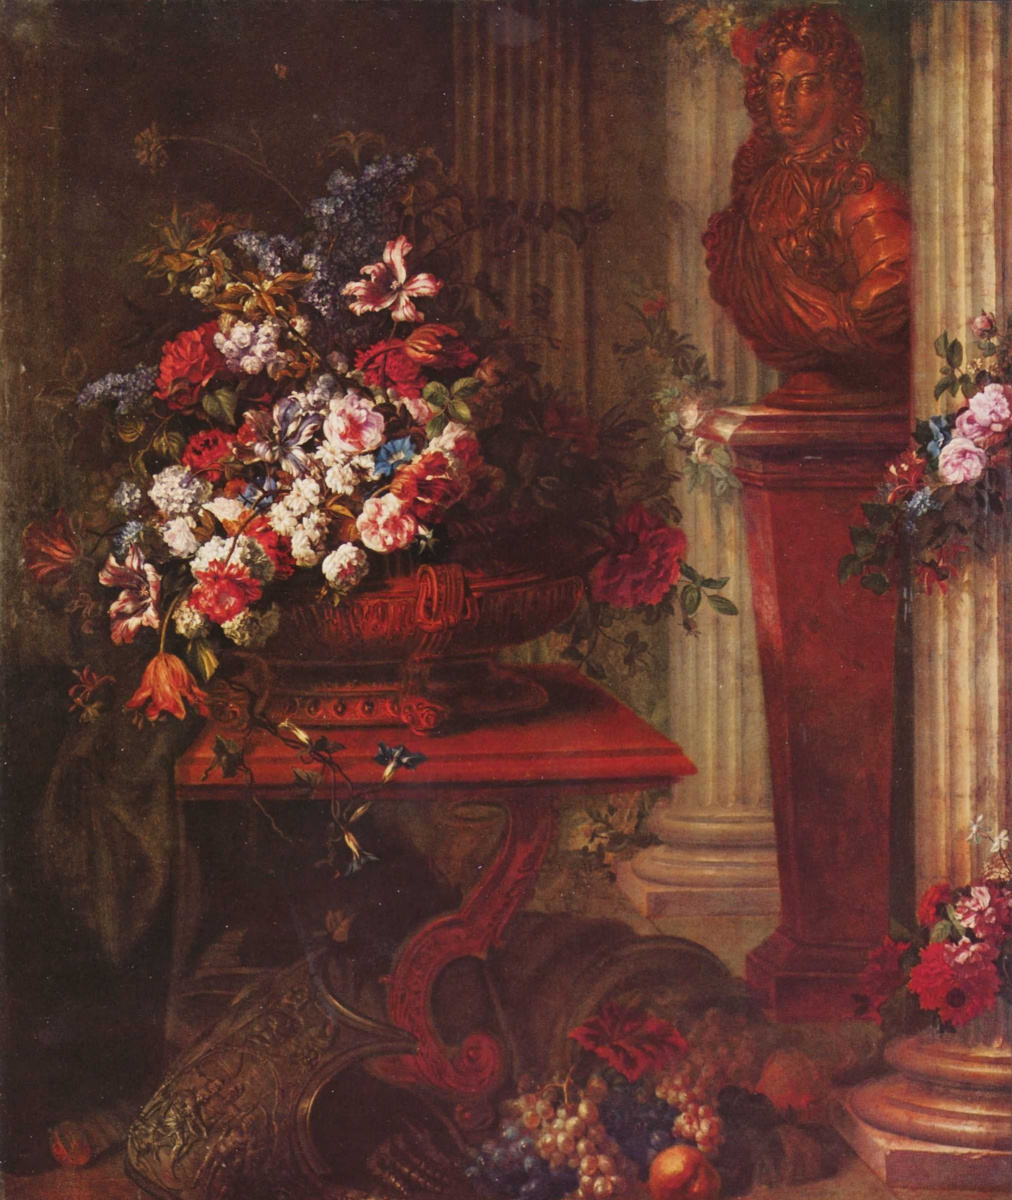 Jean-Baptiste Belin the Elder. Vase with flowers and bronze bust of Louis XIV